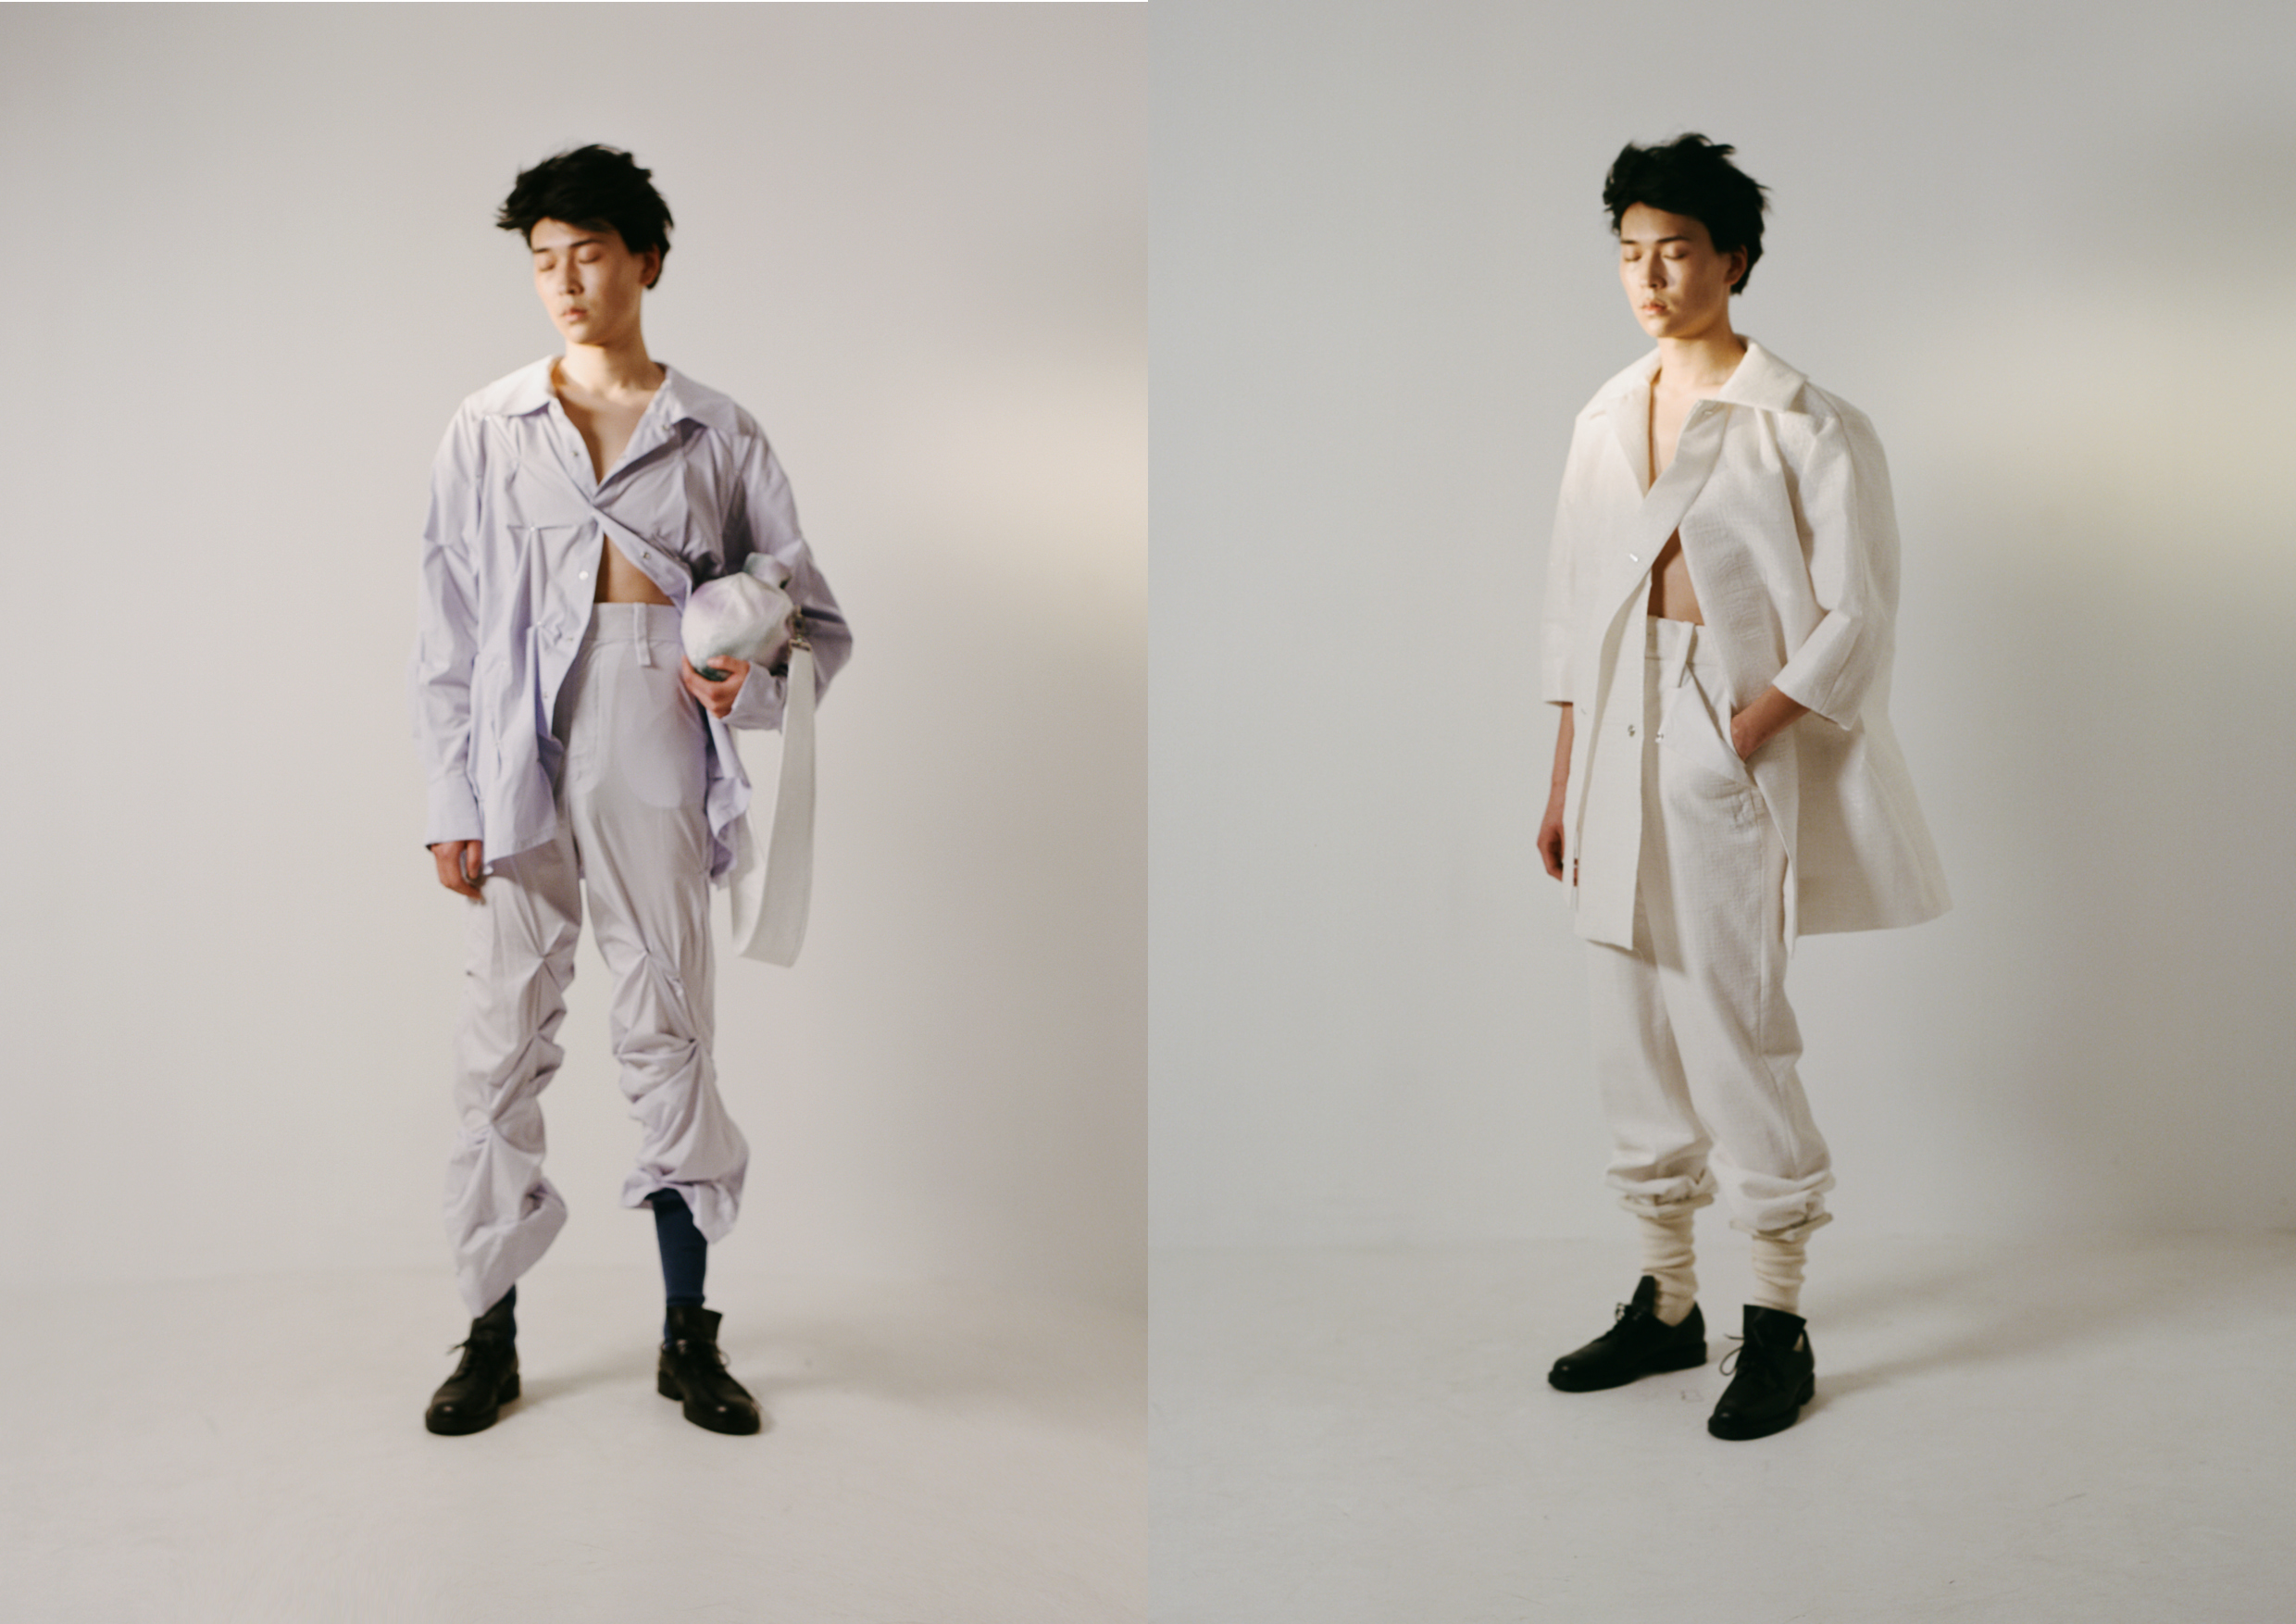 Two looks from Shek Leung spring 2022 collection